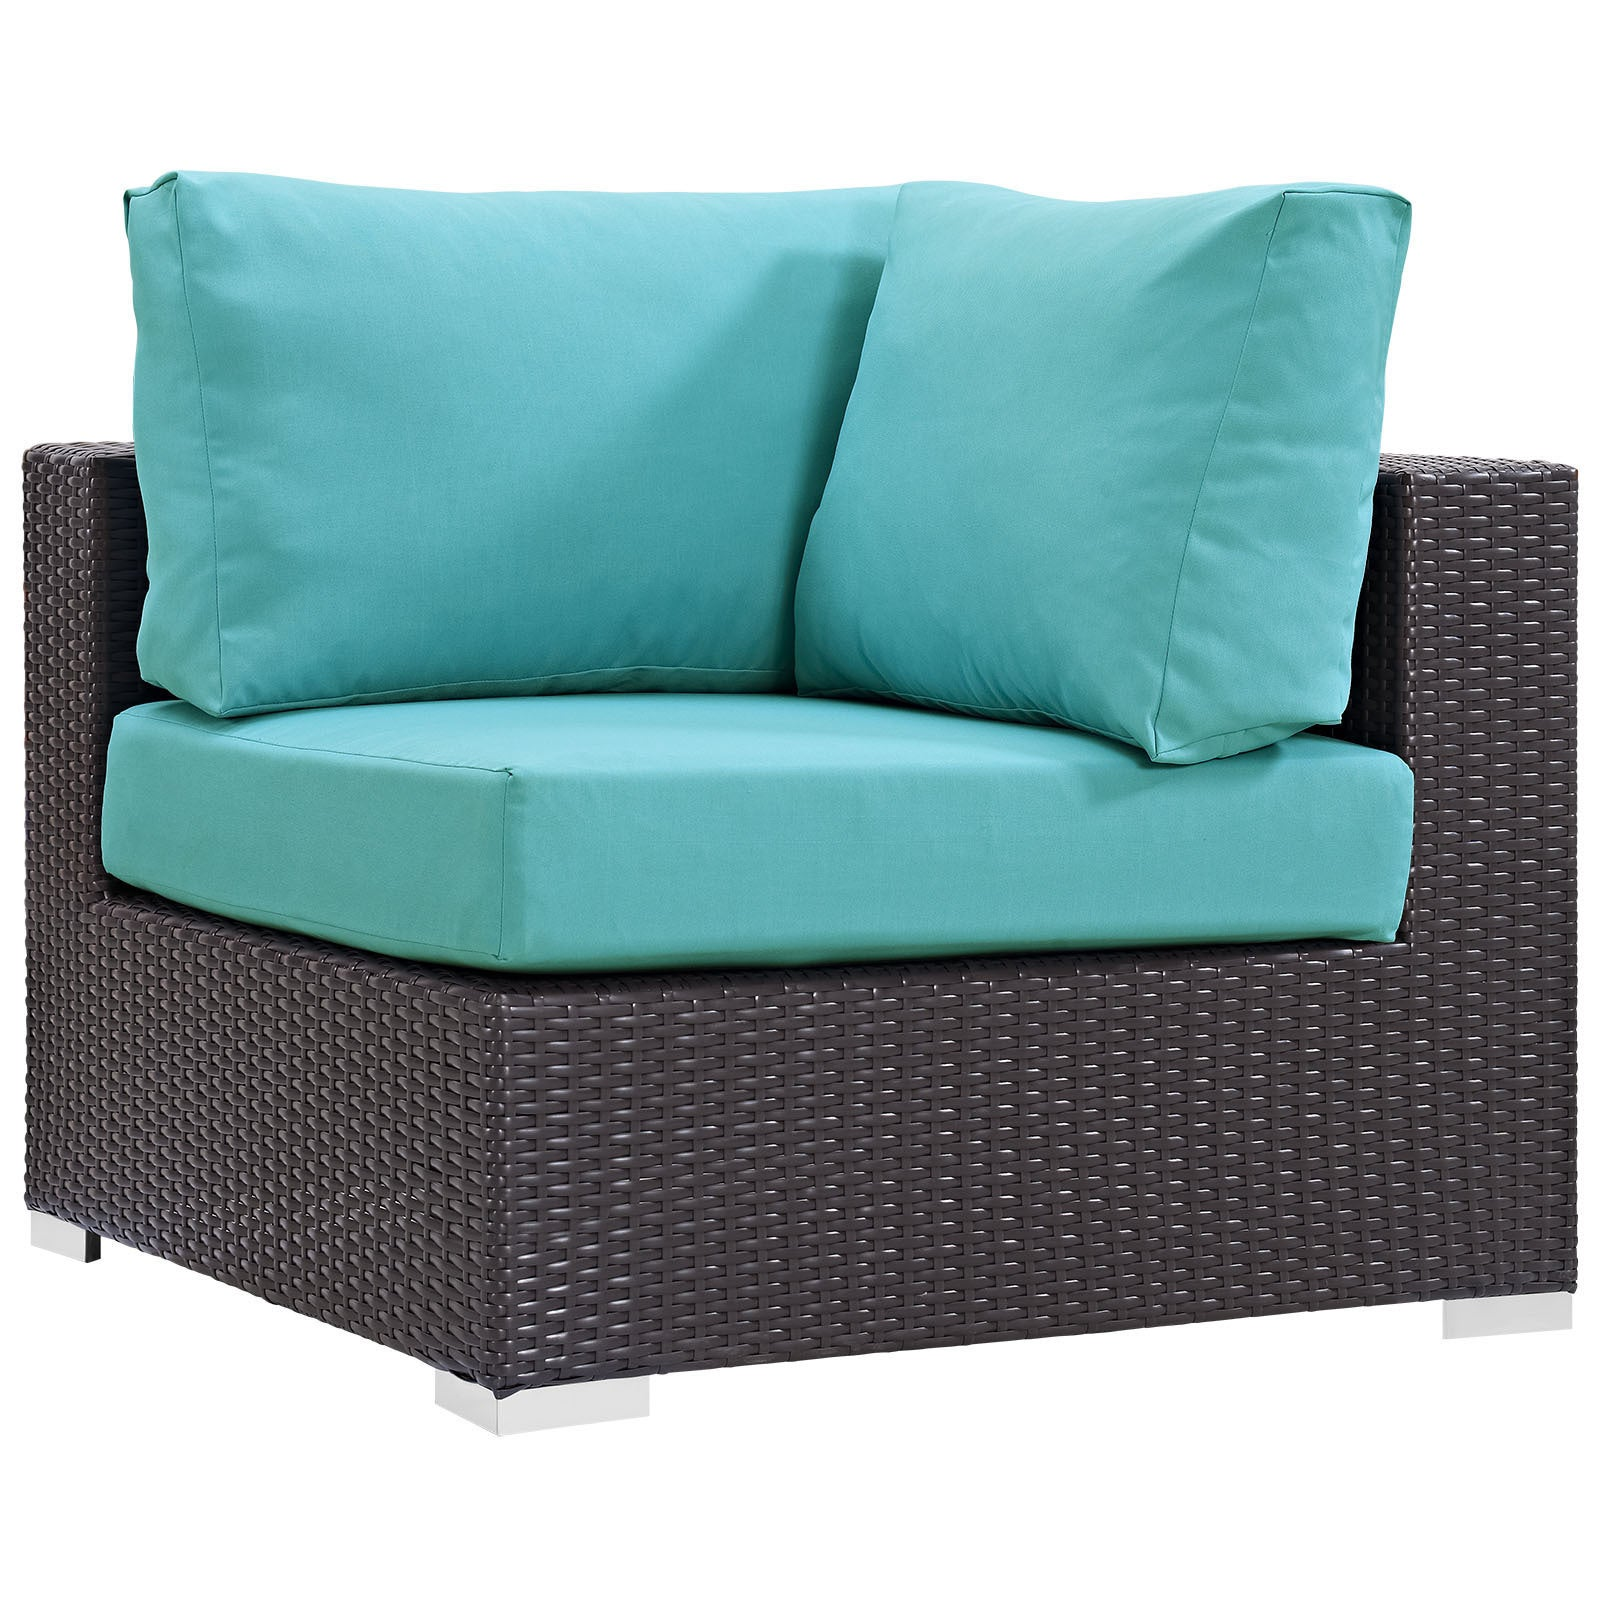 dawson green piece seating spa ae p sets cushions set patio sunbrella with sectional fabric outdoor conversation